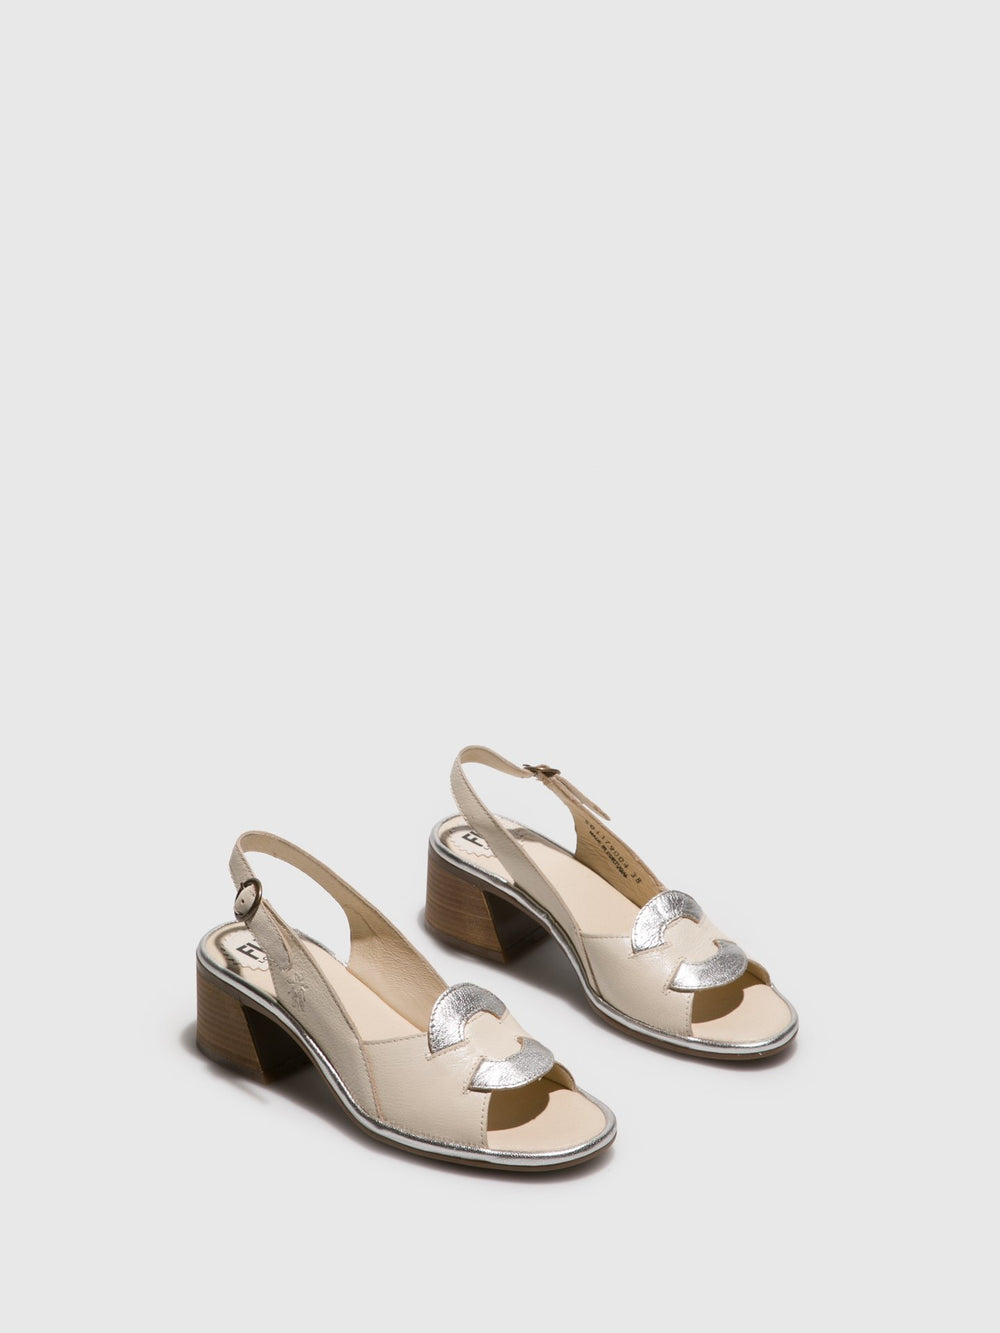 Sling-Back Sandals LESO179FLY OFFWHITE/SILVER